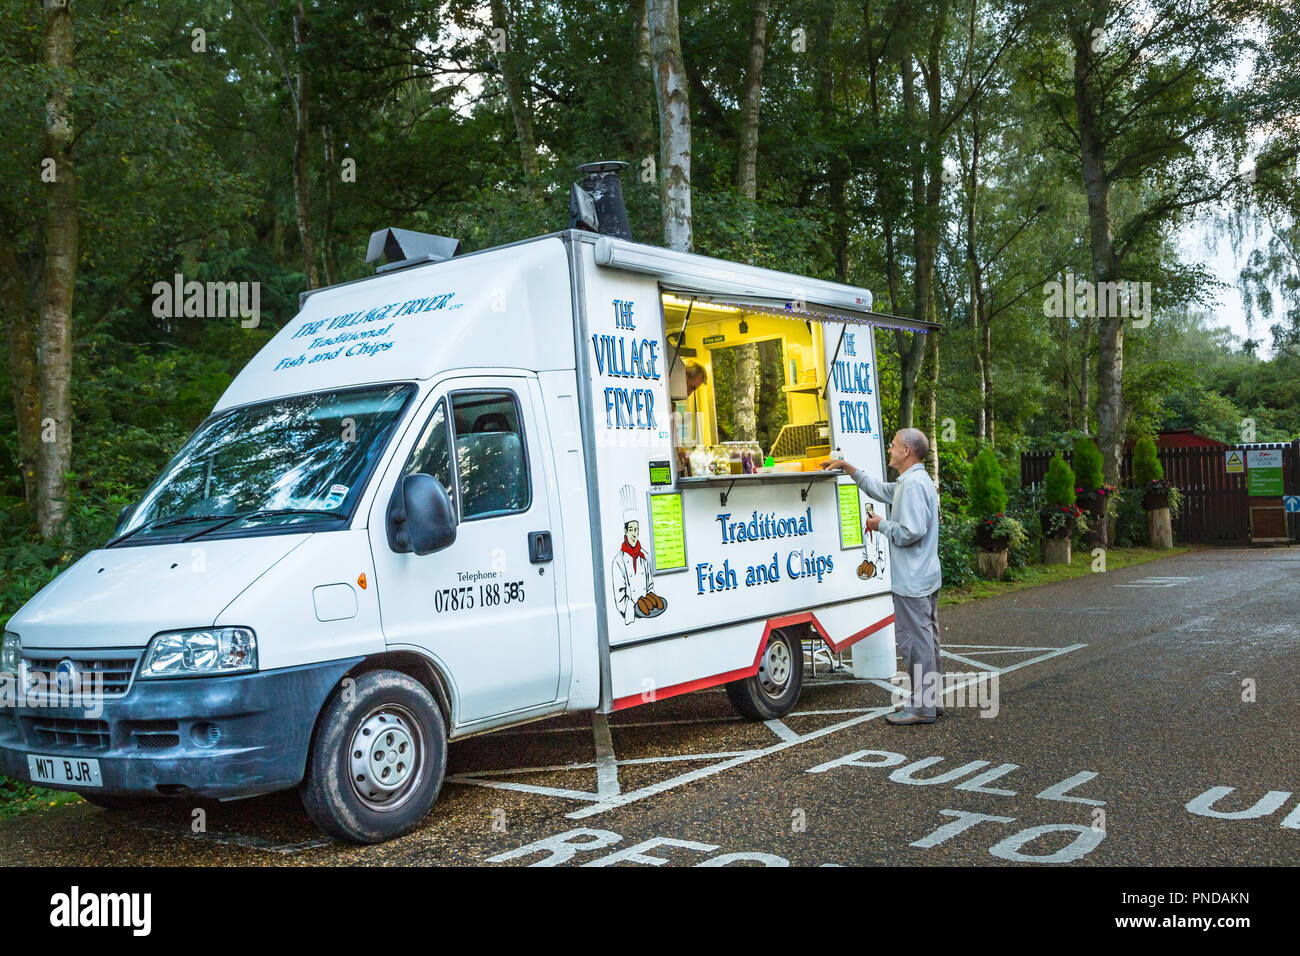 Truck Edge Mobile >> A Mobile Fish And Chip Van At The Edge Of A Camp Site Stock Photo